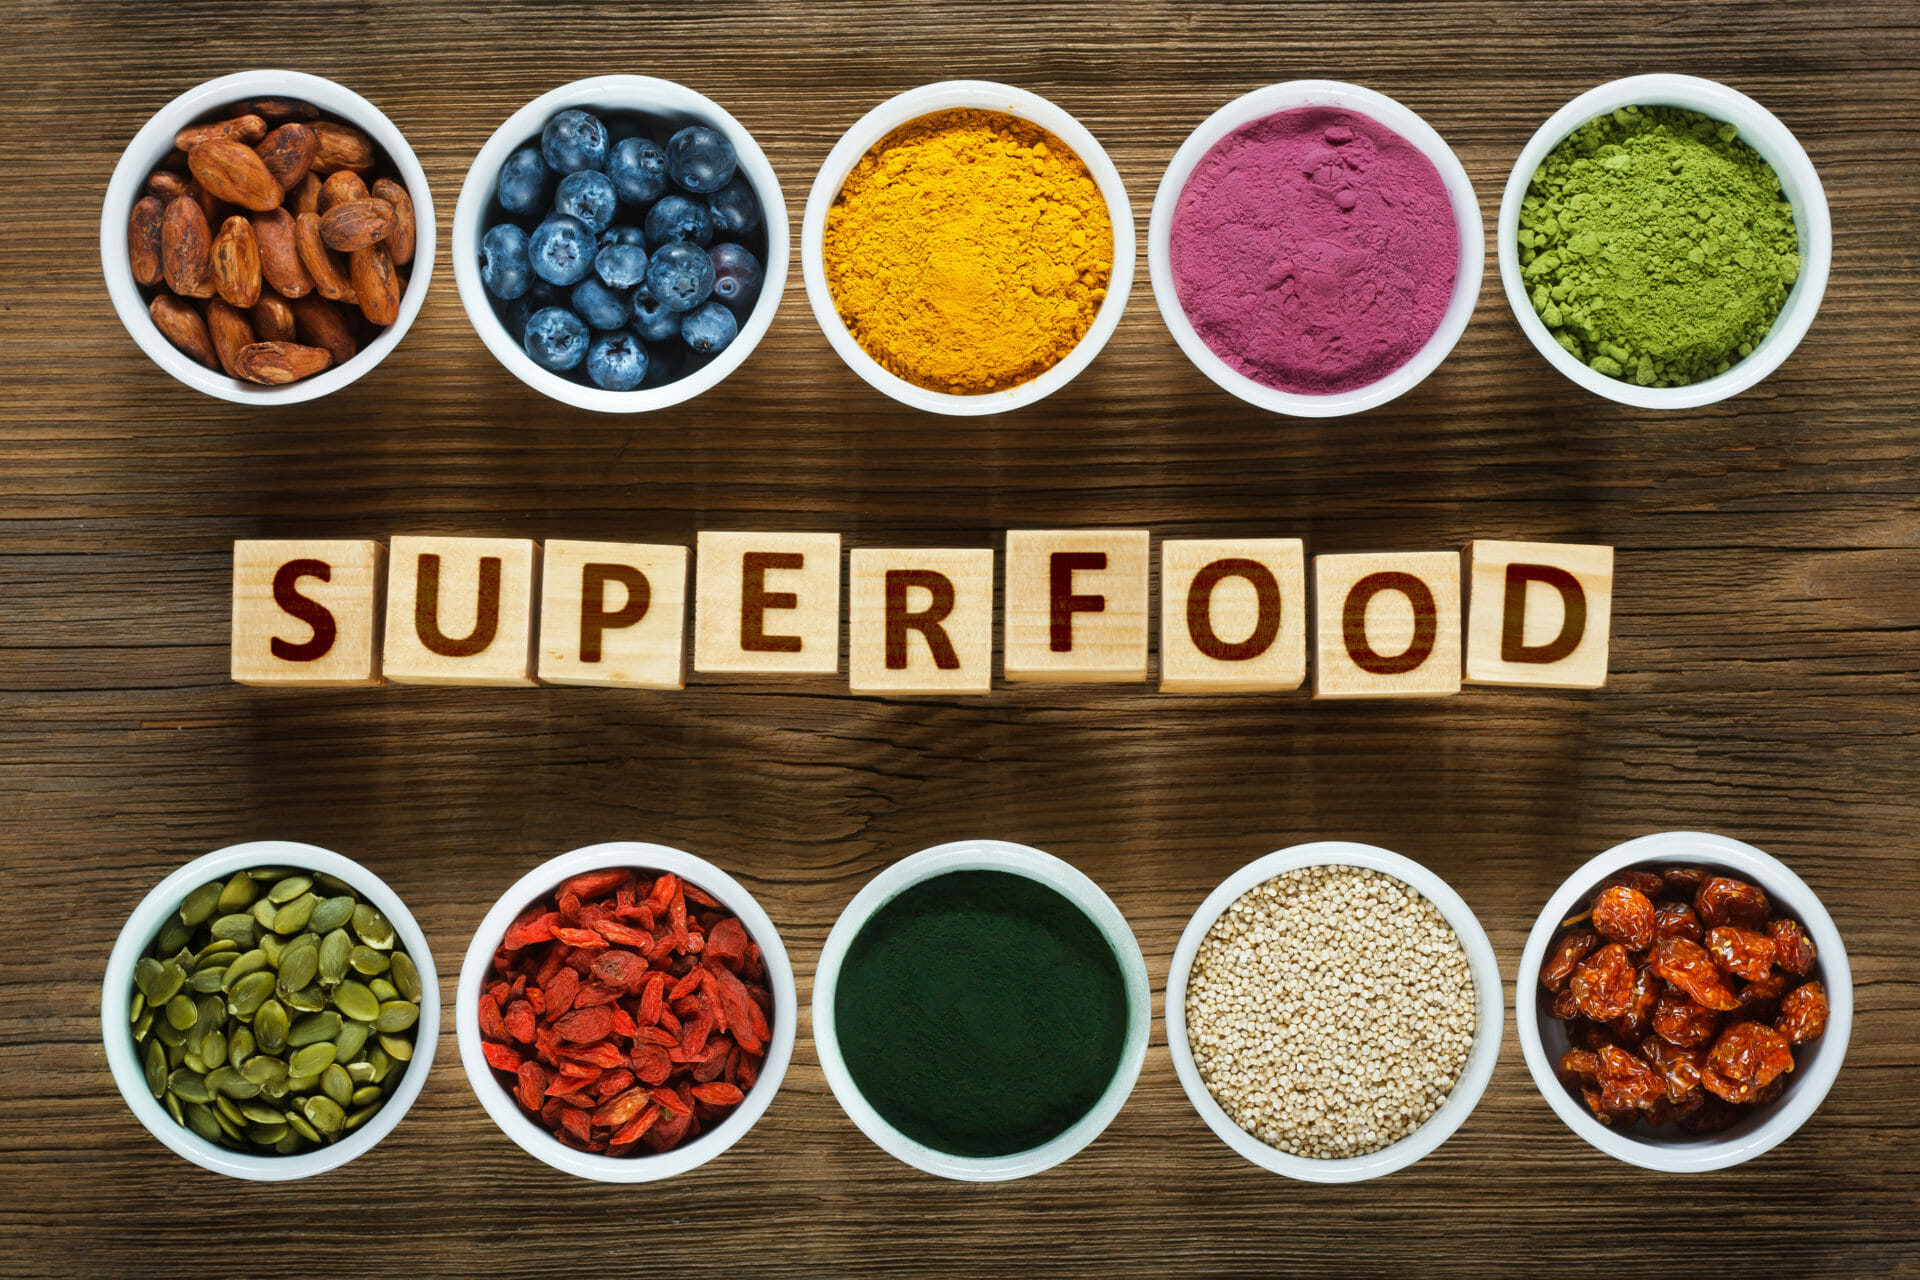 Superfoods  aren't as super as you might think